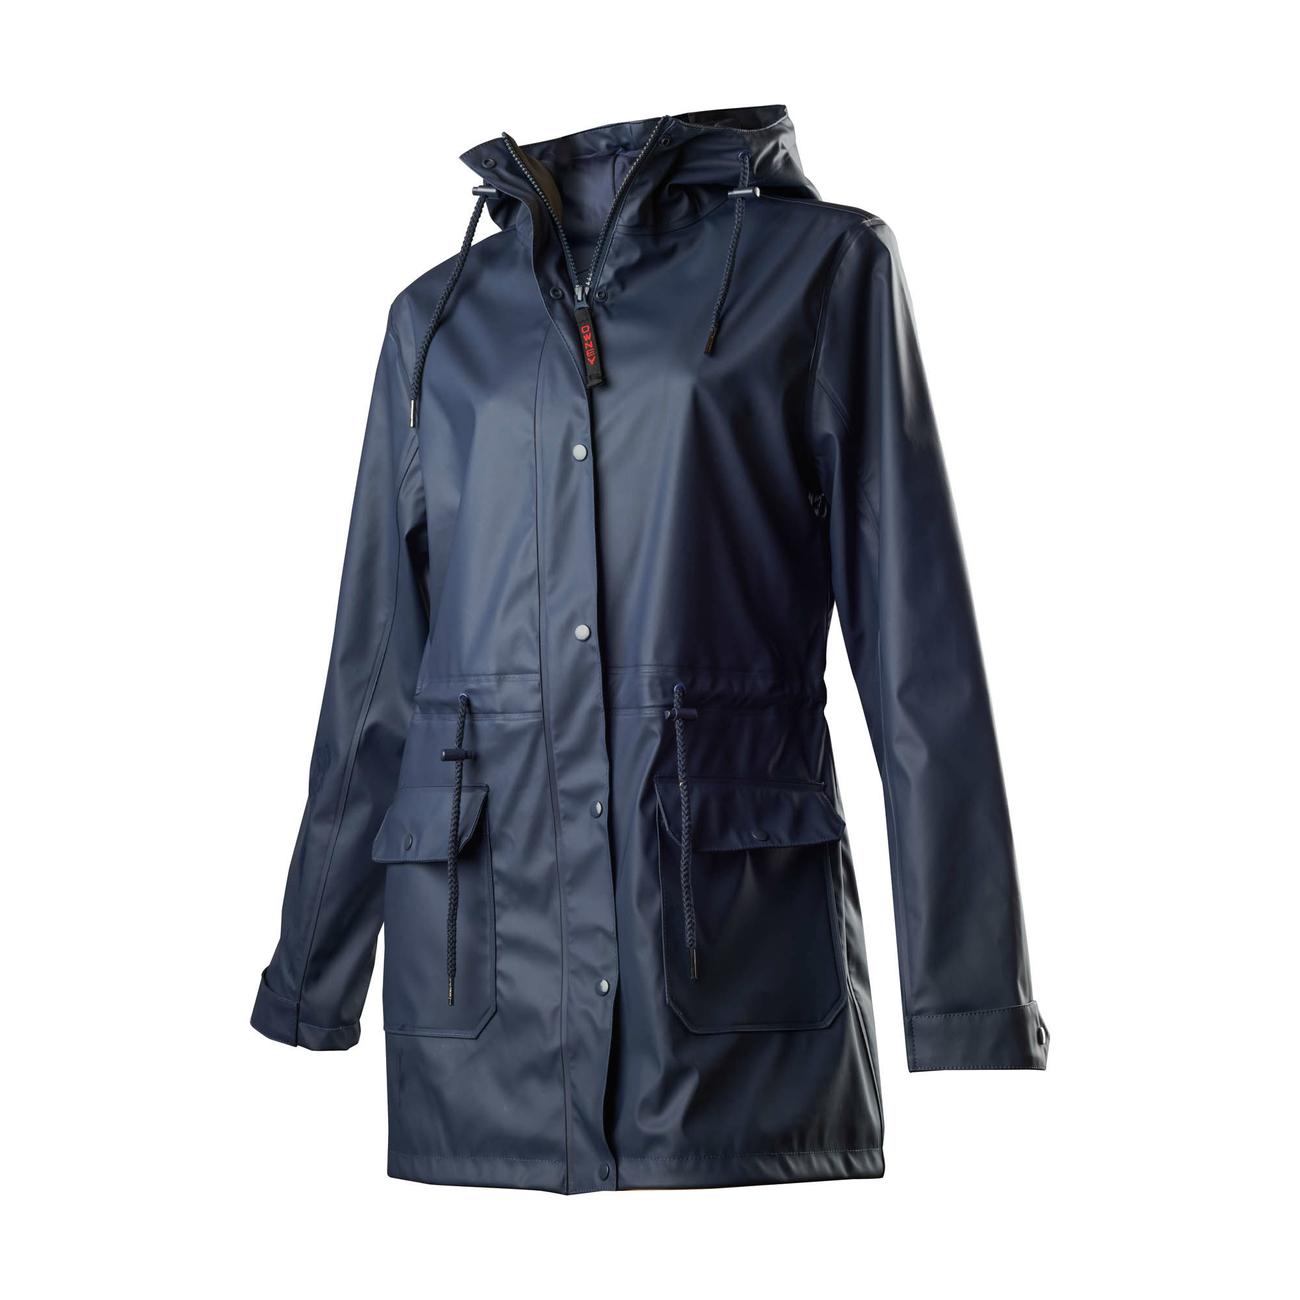 OWNEY Damen-Regenjacke Vela, 3XL, blau